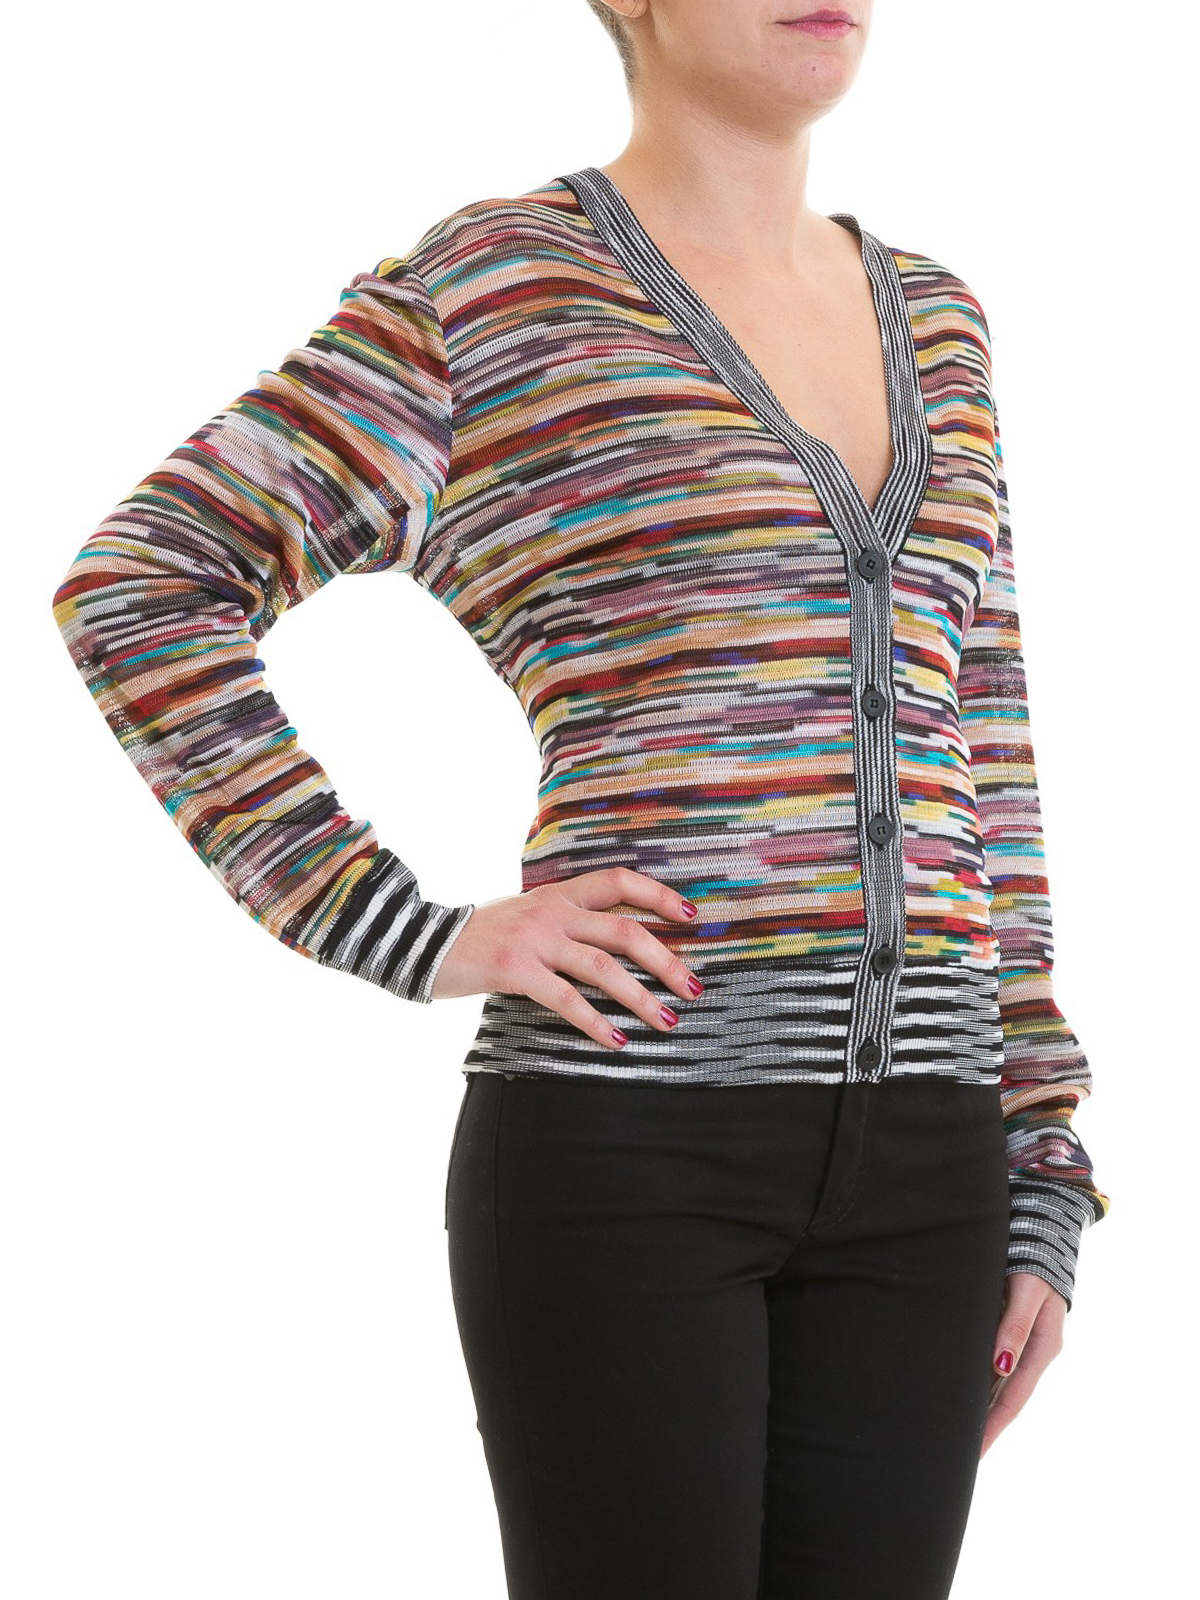 huge discount e0ac5 1a47a Missoni - Cardigan fantasia in maglia di viscosa - cardigan ...